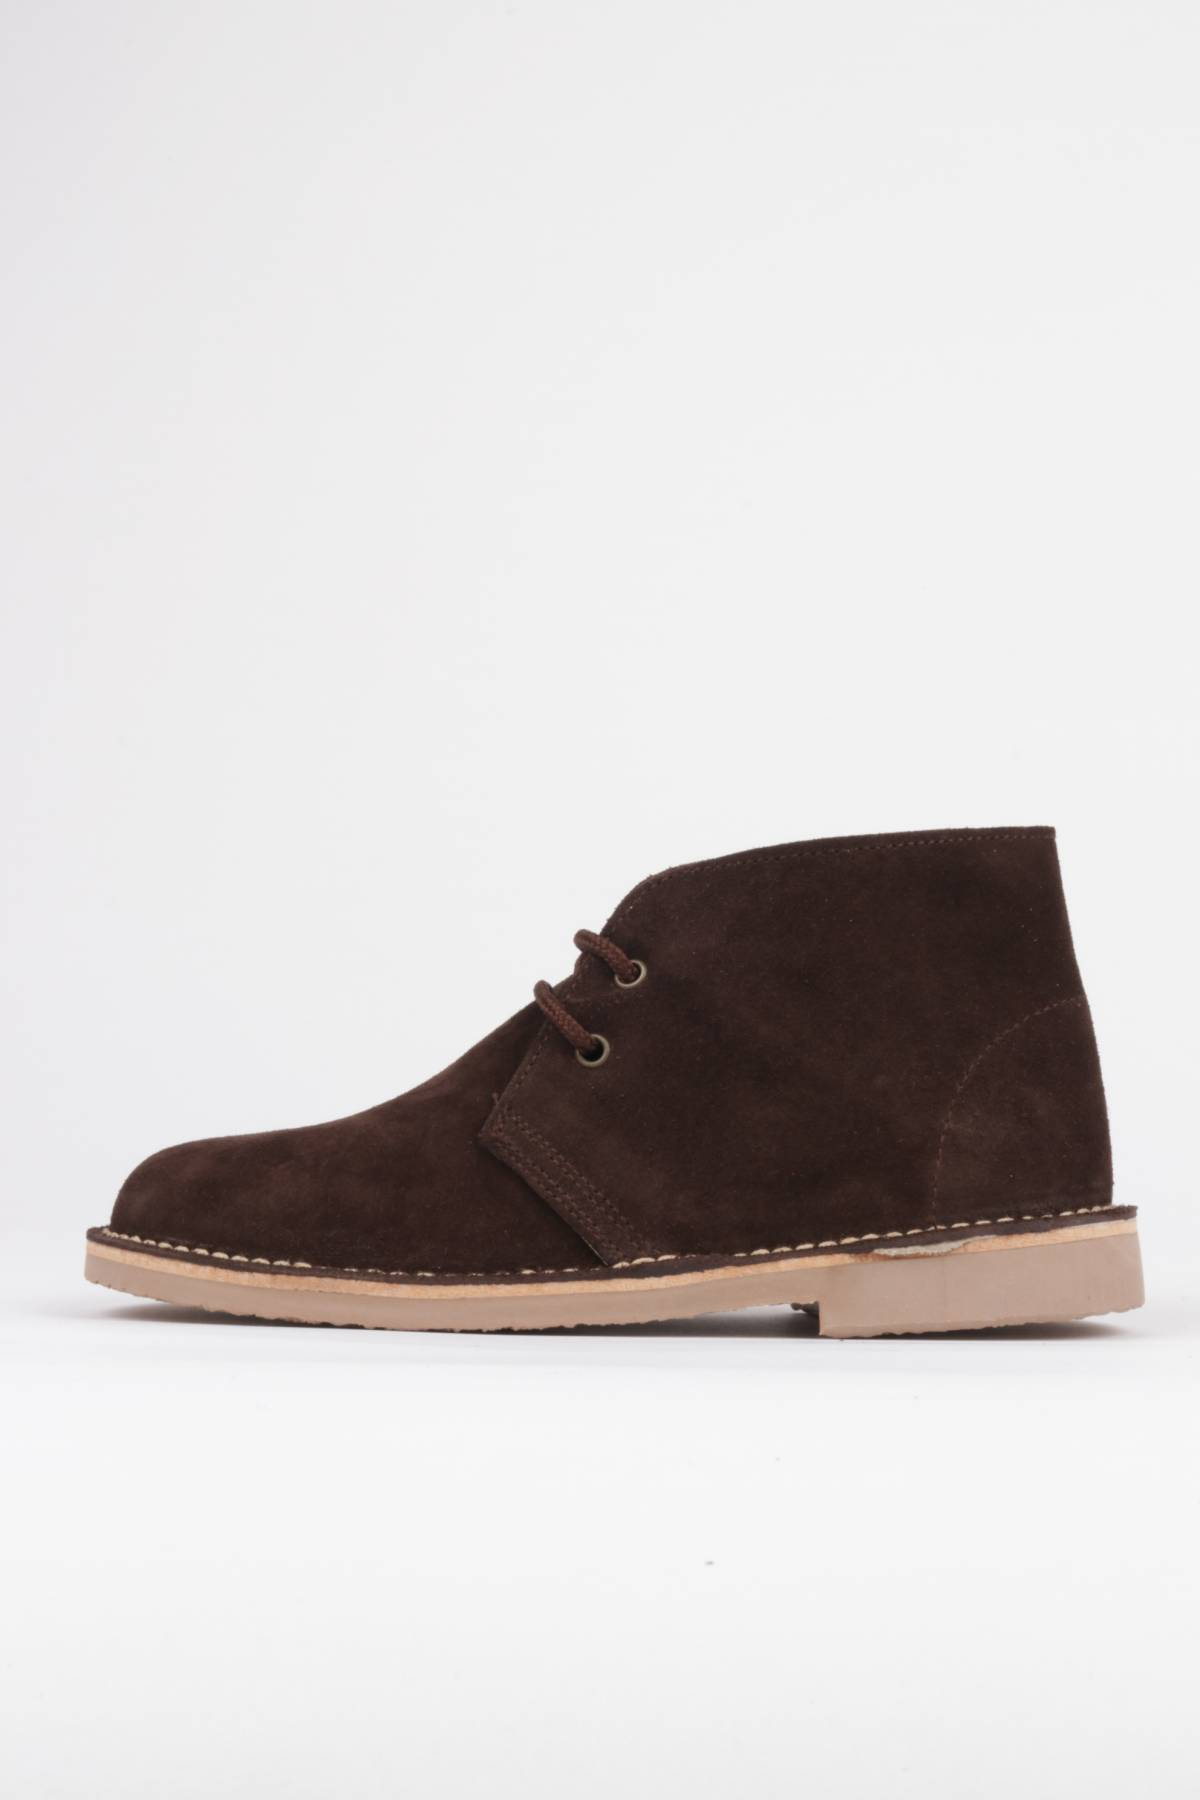 Brown desert boots lace-up